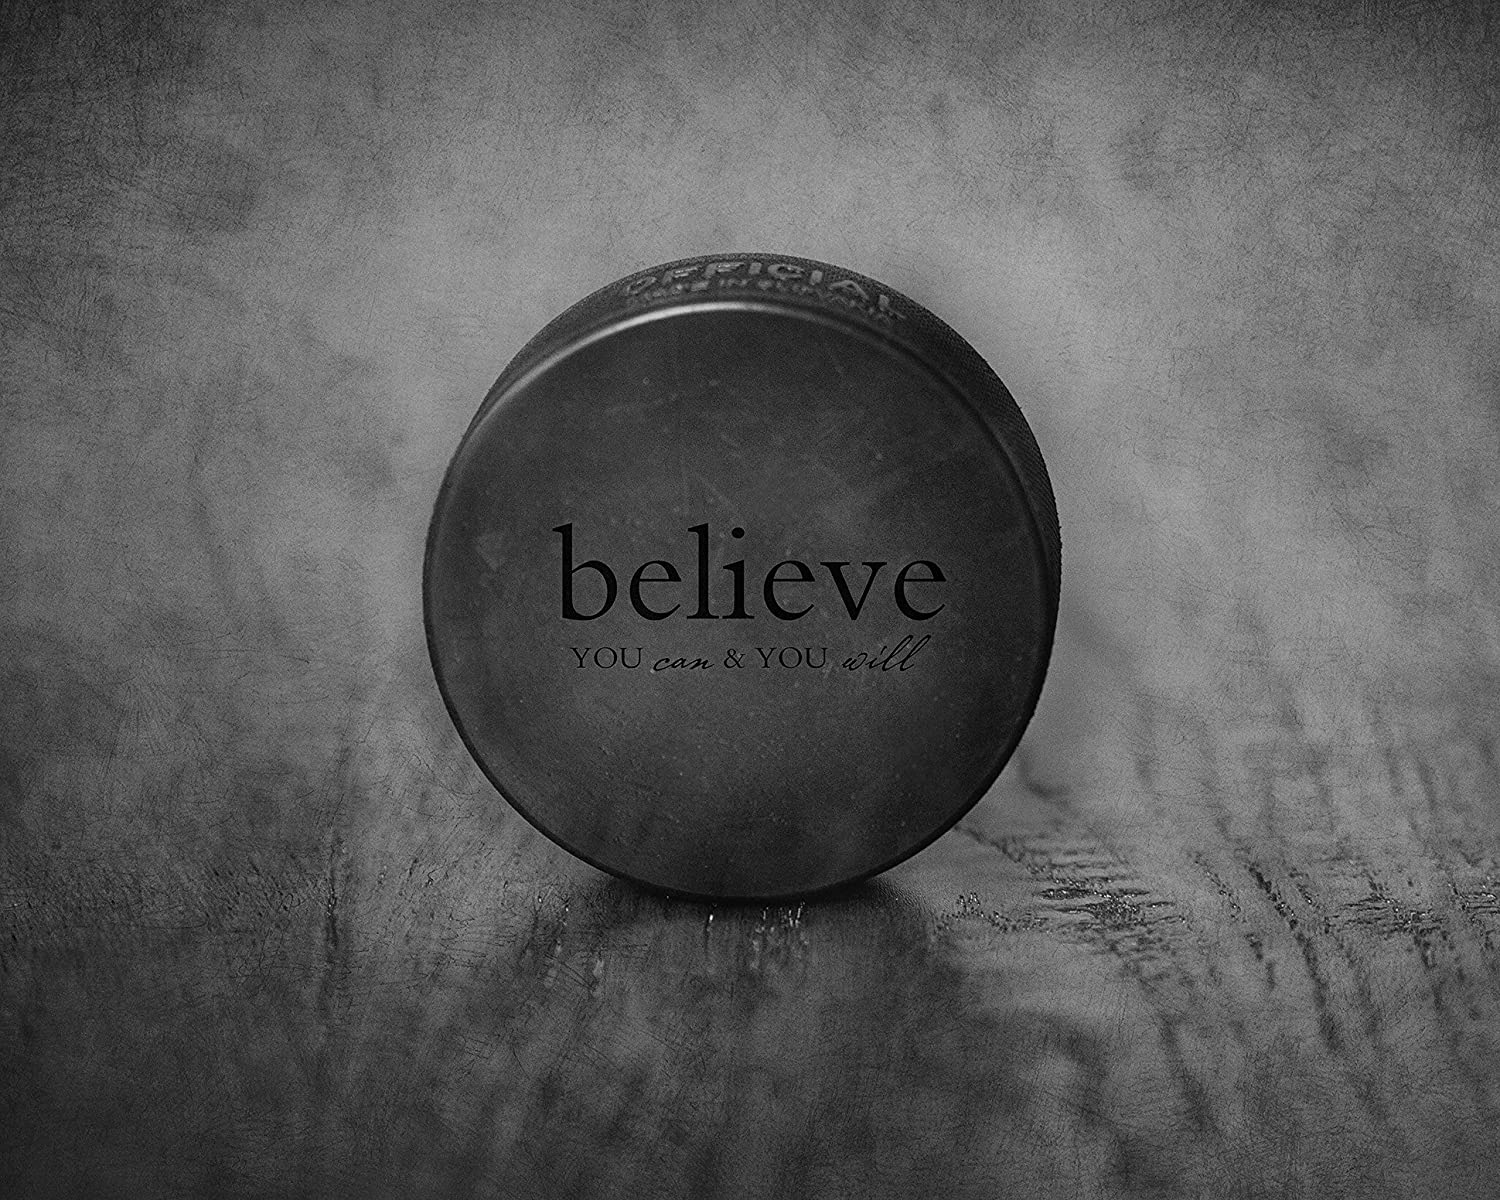 Amazon Com Black And White Hockey Puck Photograph 8x10 Unframed Sports Inspirational Wall Art Sports Motivational Quotes Sports Pictures For Bedroom Sports Kids Wall Decor Handmade